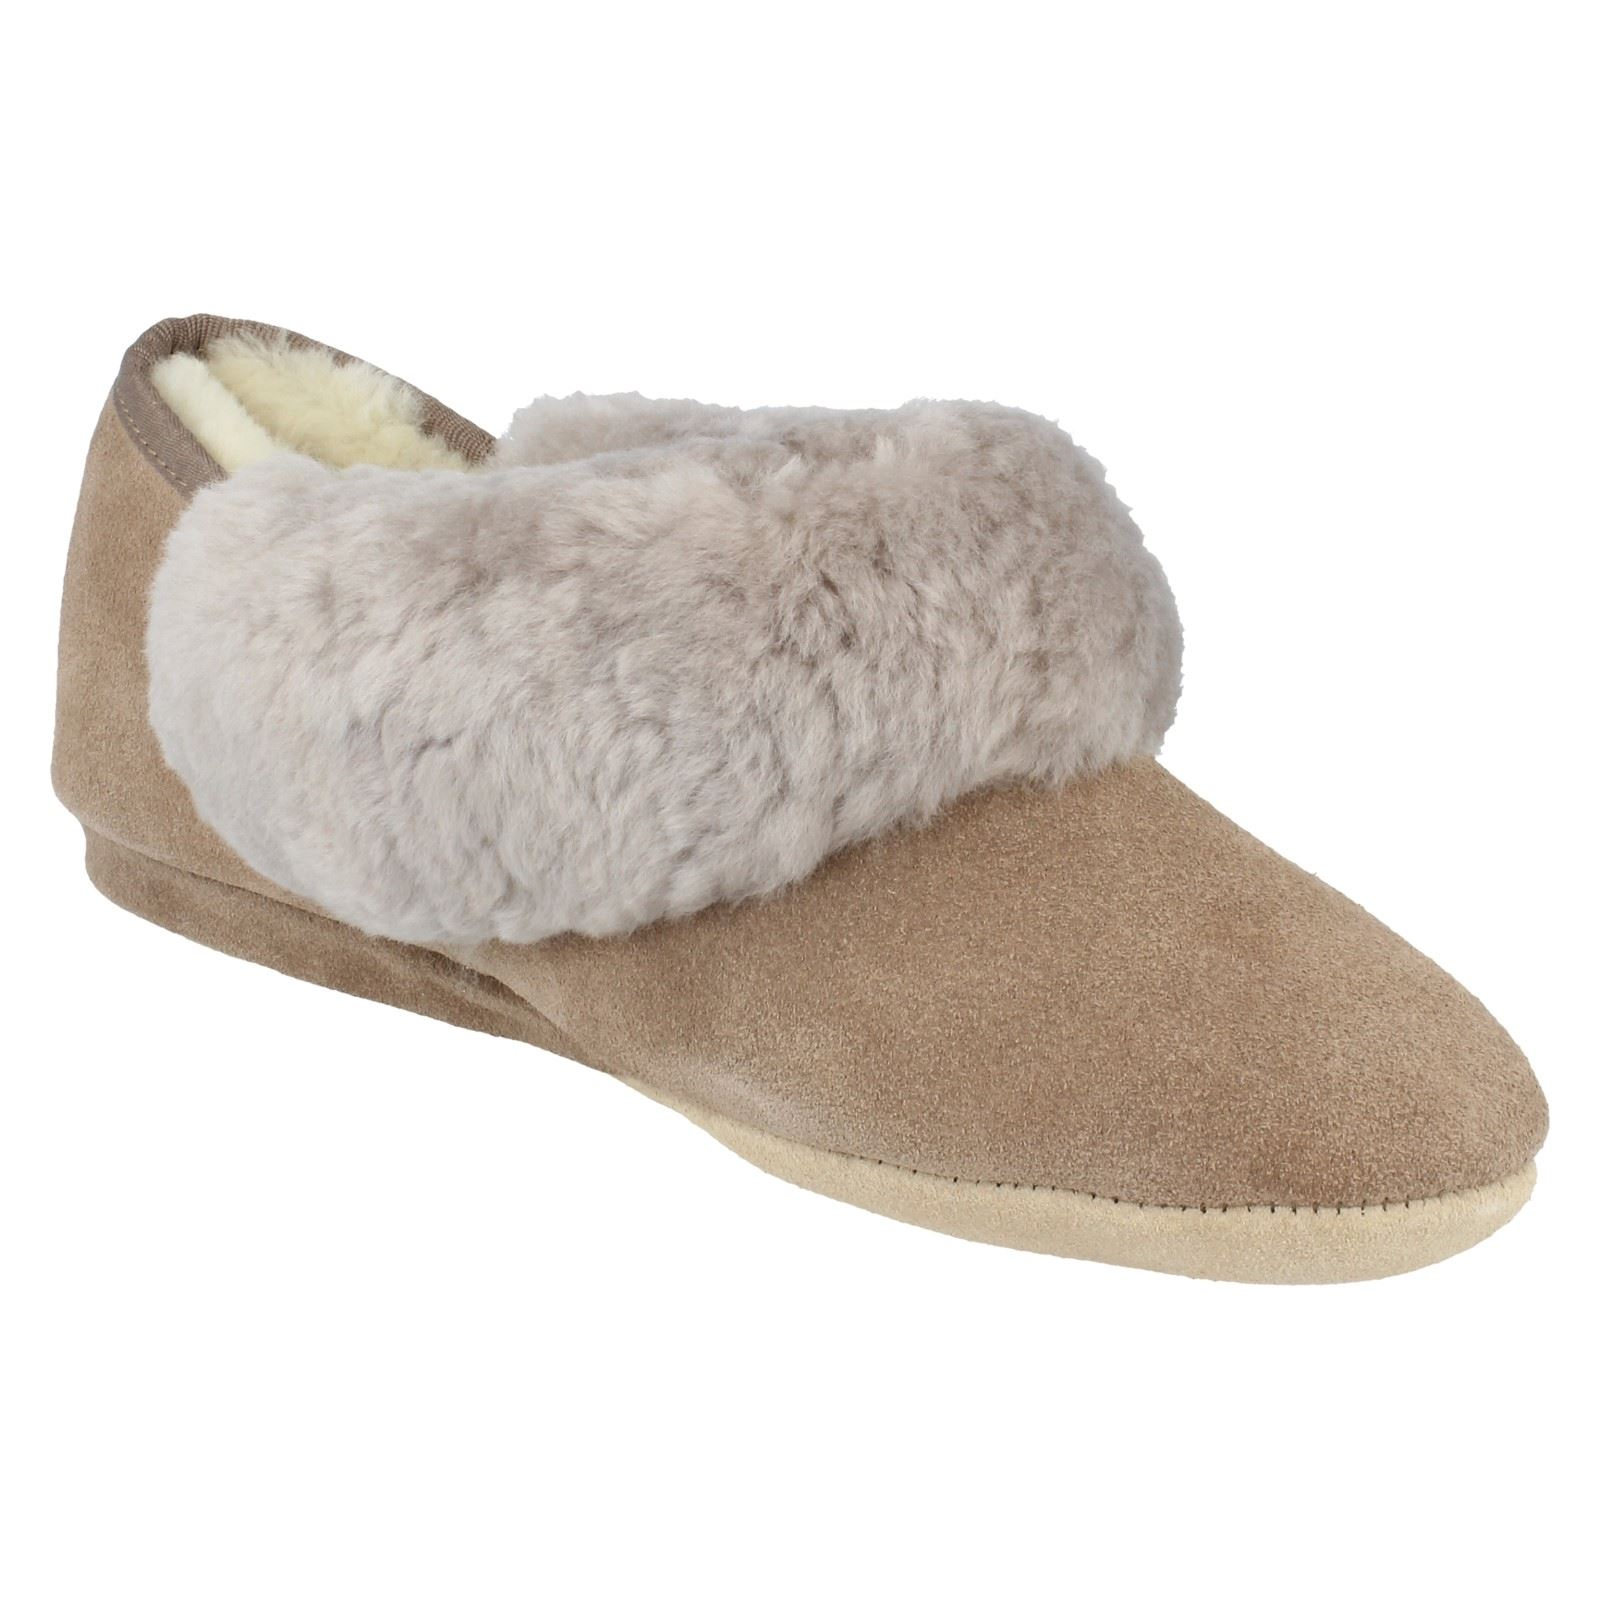 Gentleman/Lady Ladies Morlands Slippers - The Strathmore The - color is very eye-catching stable quality Known for its excellent quality 7308e4